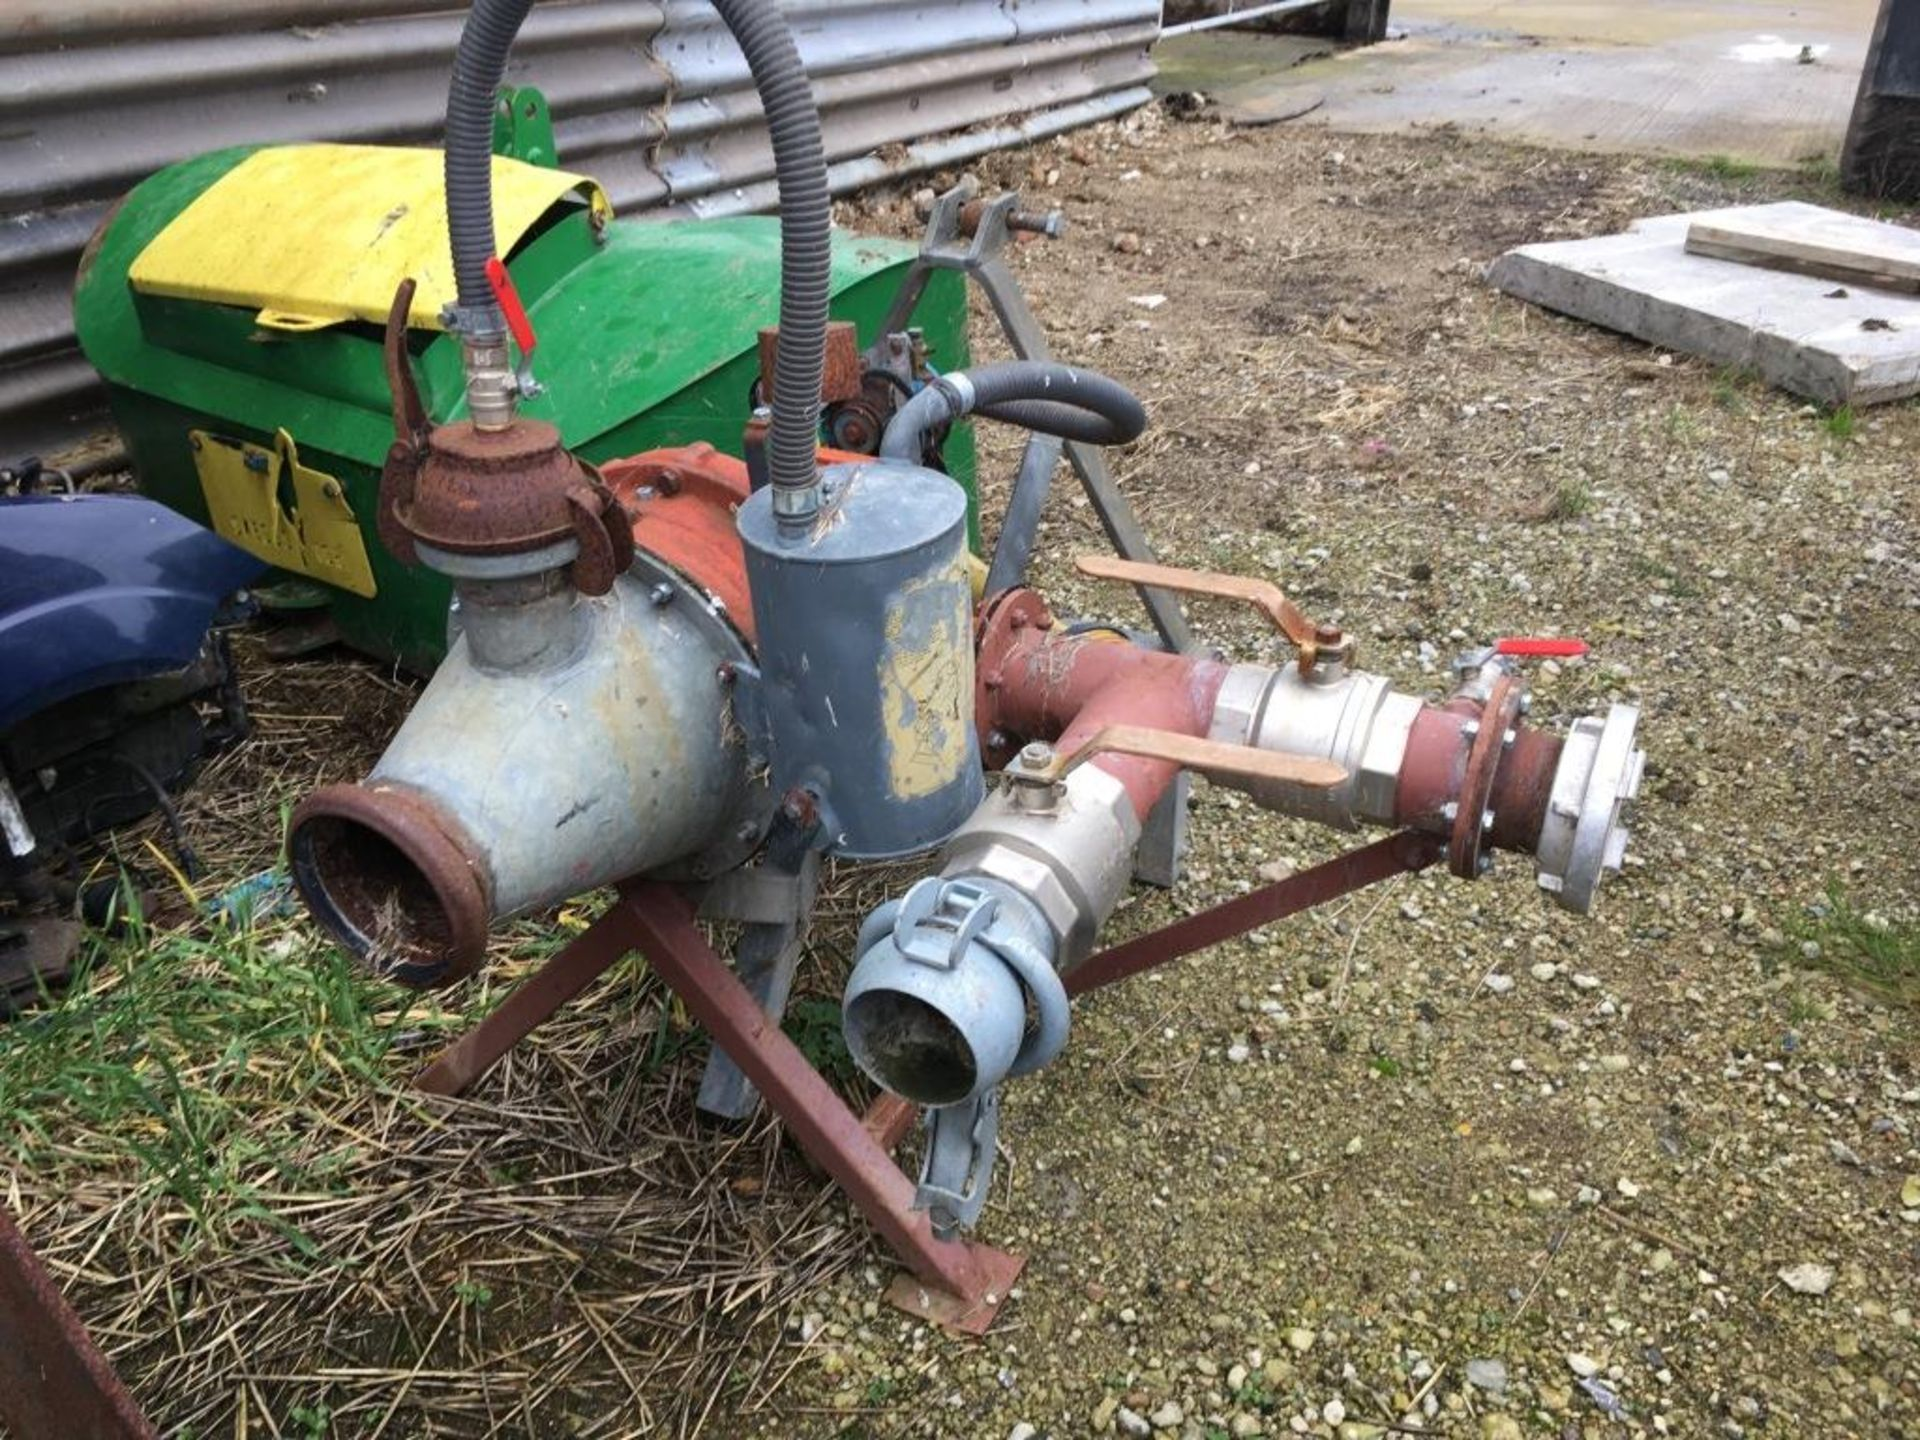 Lot 36 - PTO driven tractor mounted pump